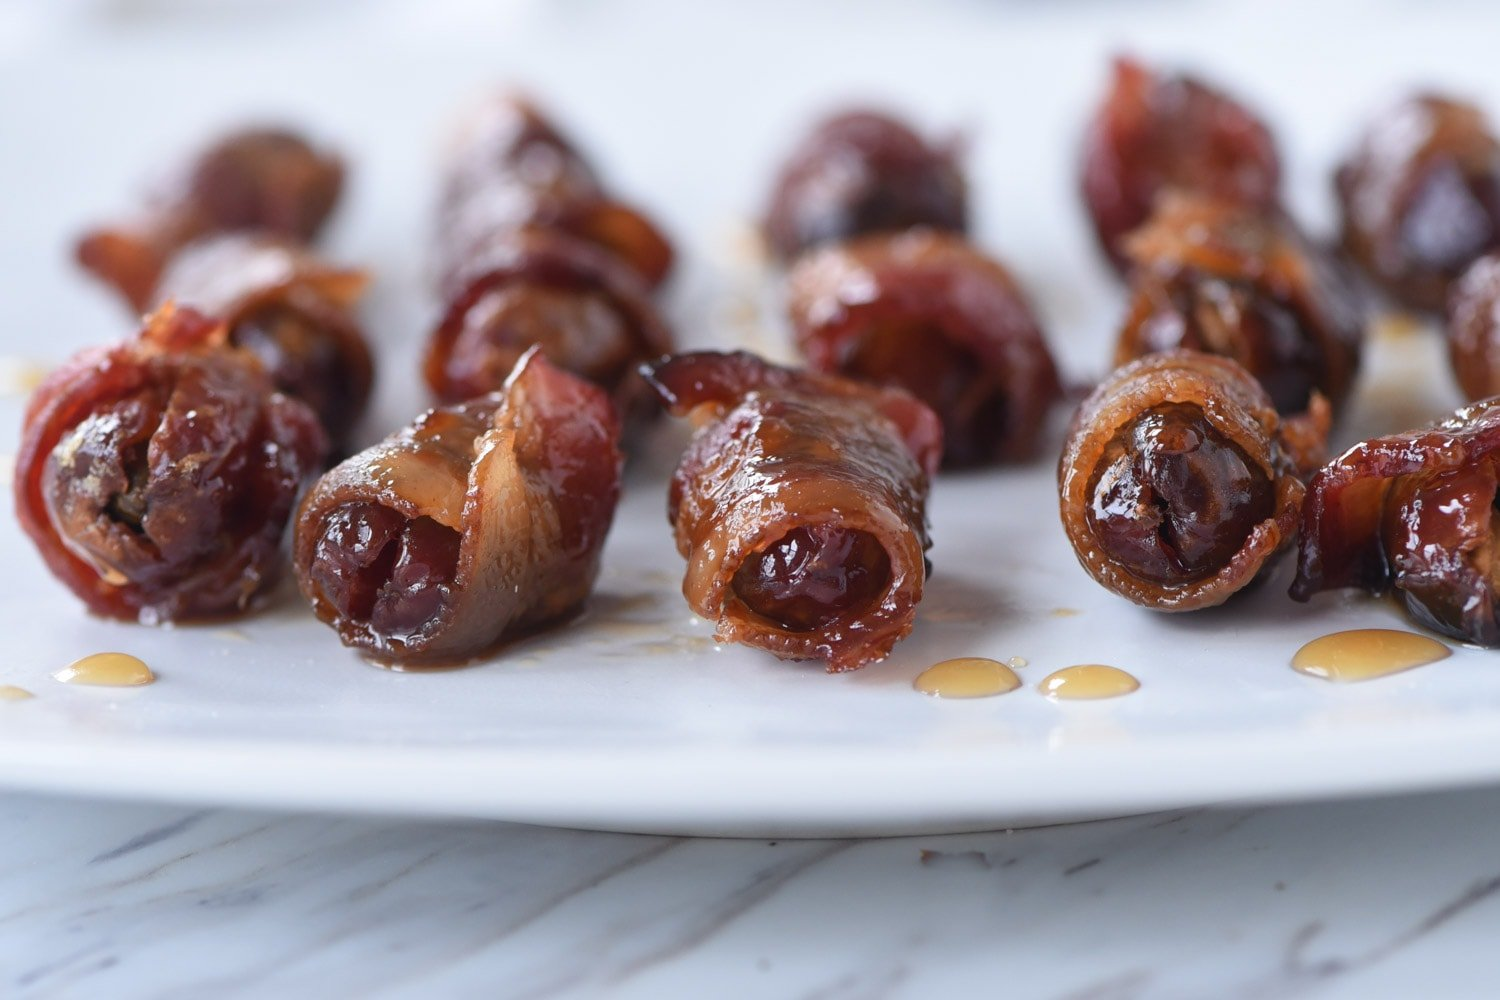 bacon wrapped dates on a white plate.